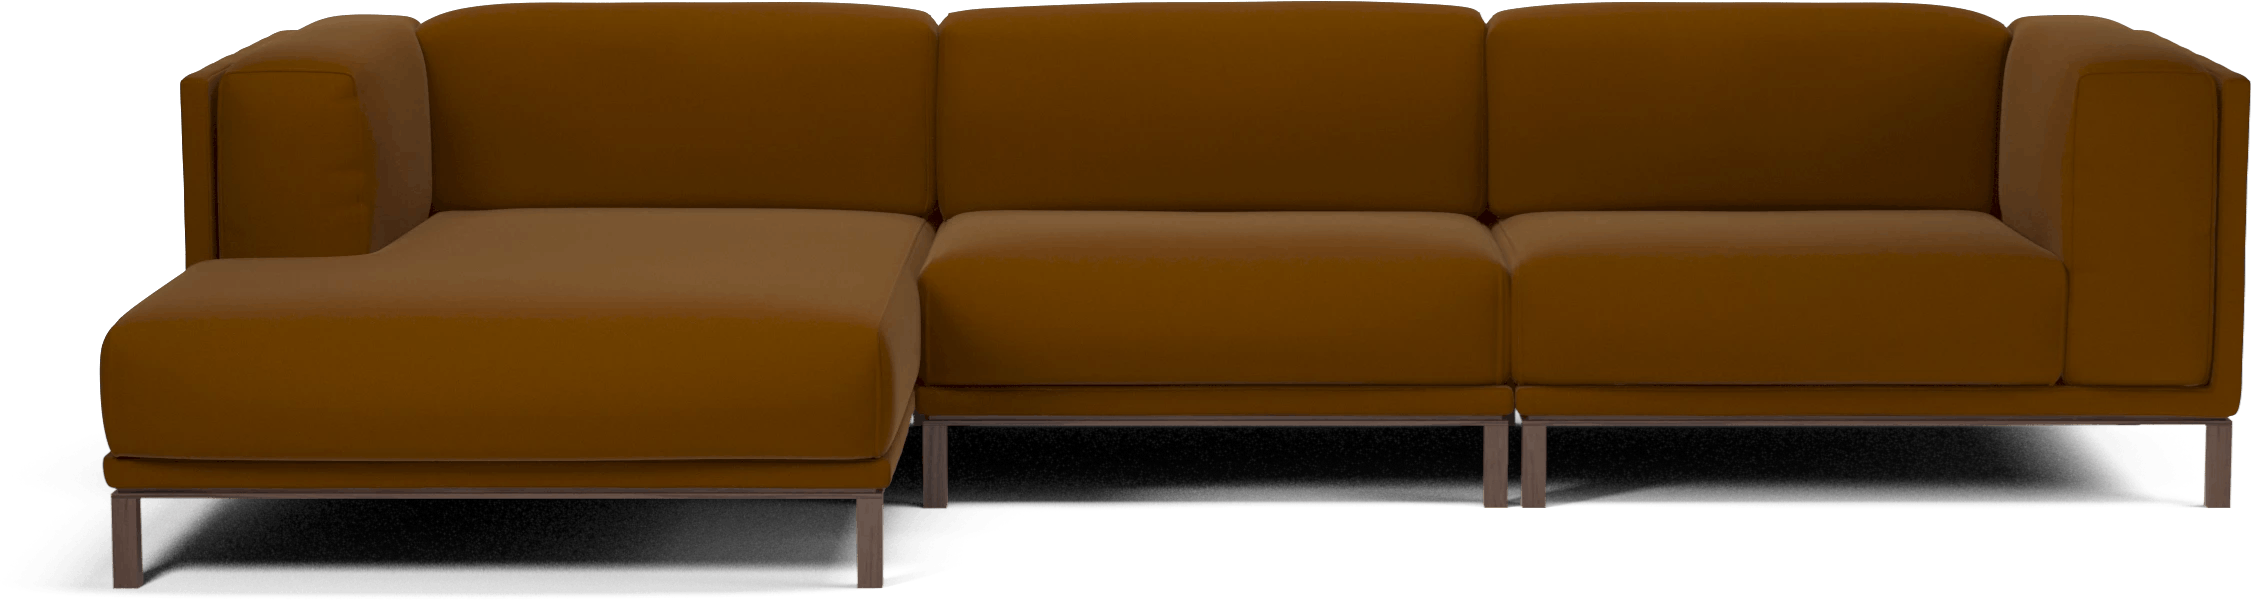 bolia orange cosy modular sofa haute living